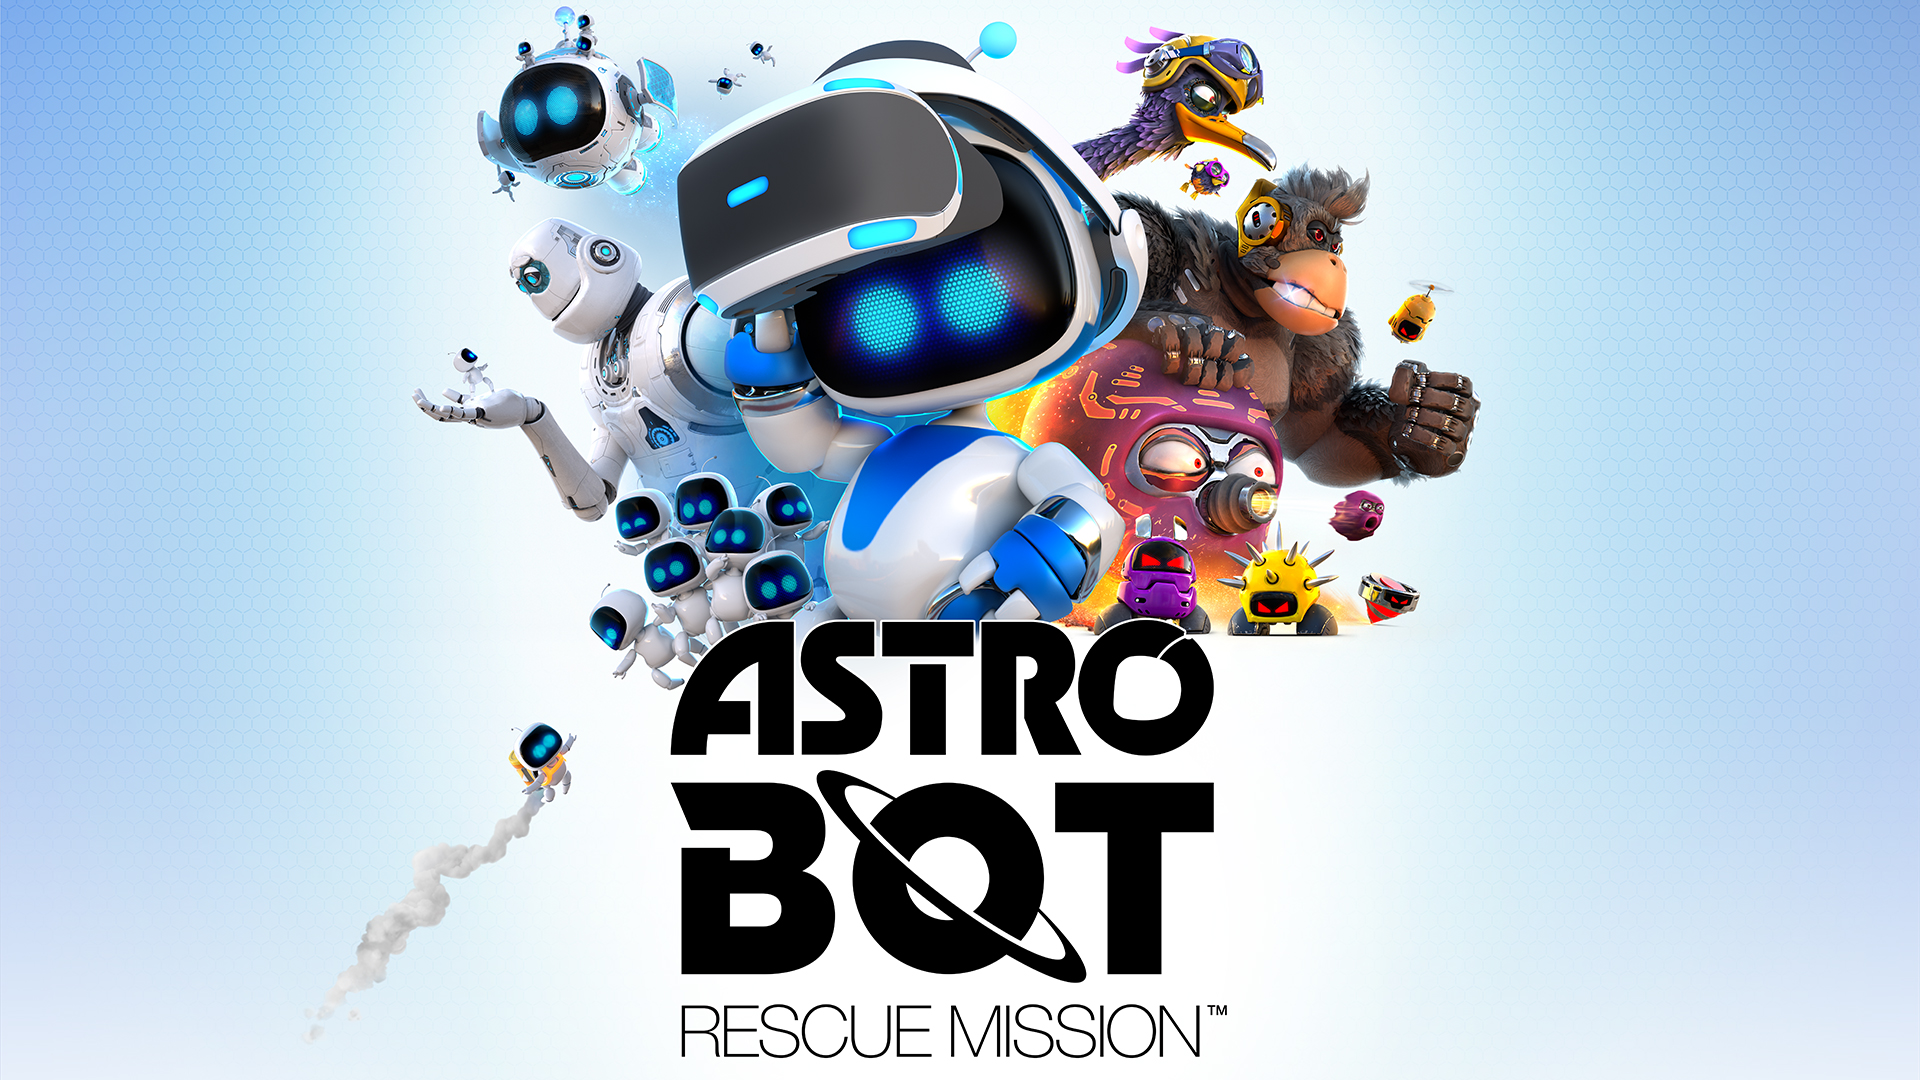 Know Astro Bot Rescue Mission Action Platformer Game Exclusively Use With Ps Vr For Ps4 Console From The Official Play Vr Games Playstation Vr Playstation